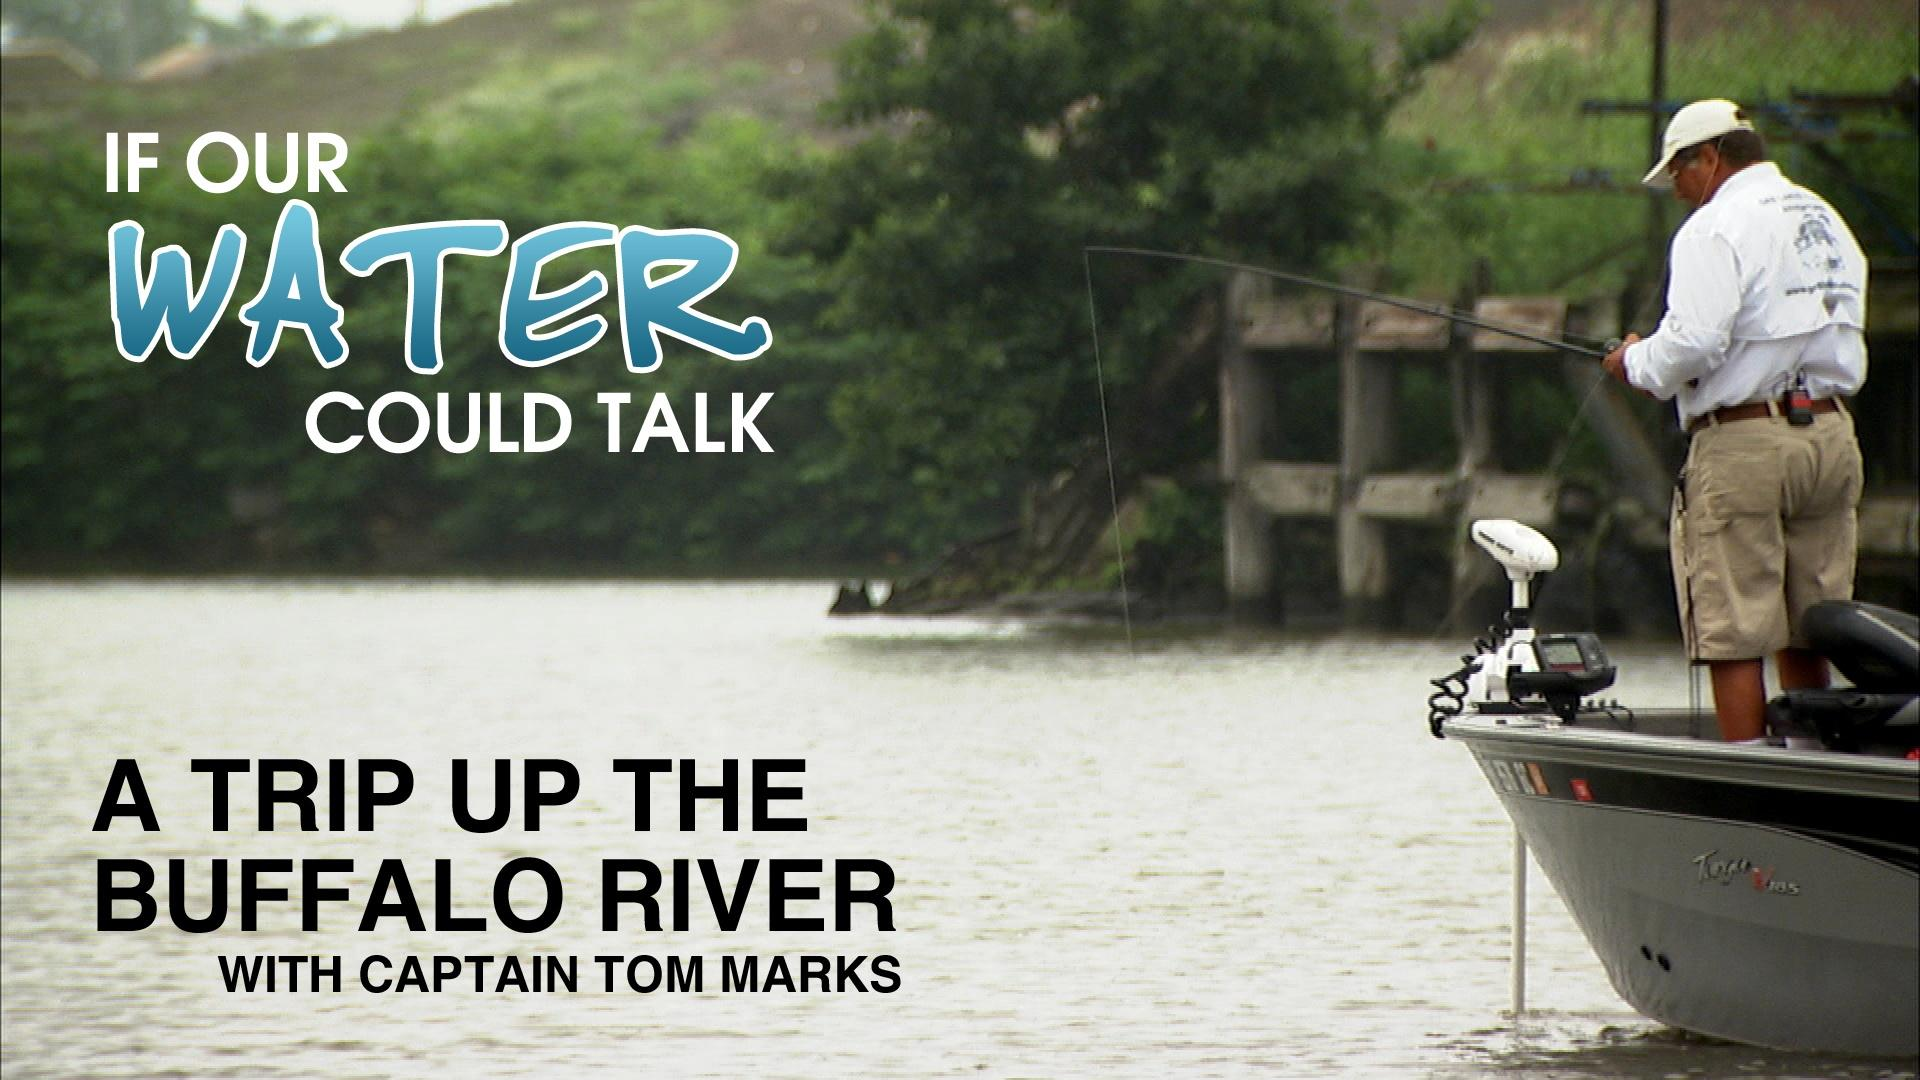 A Trip Up the Buffalo River with Captain Tom Marks